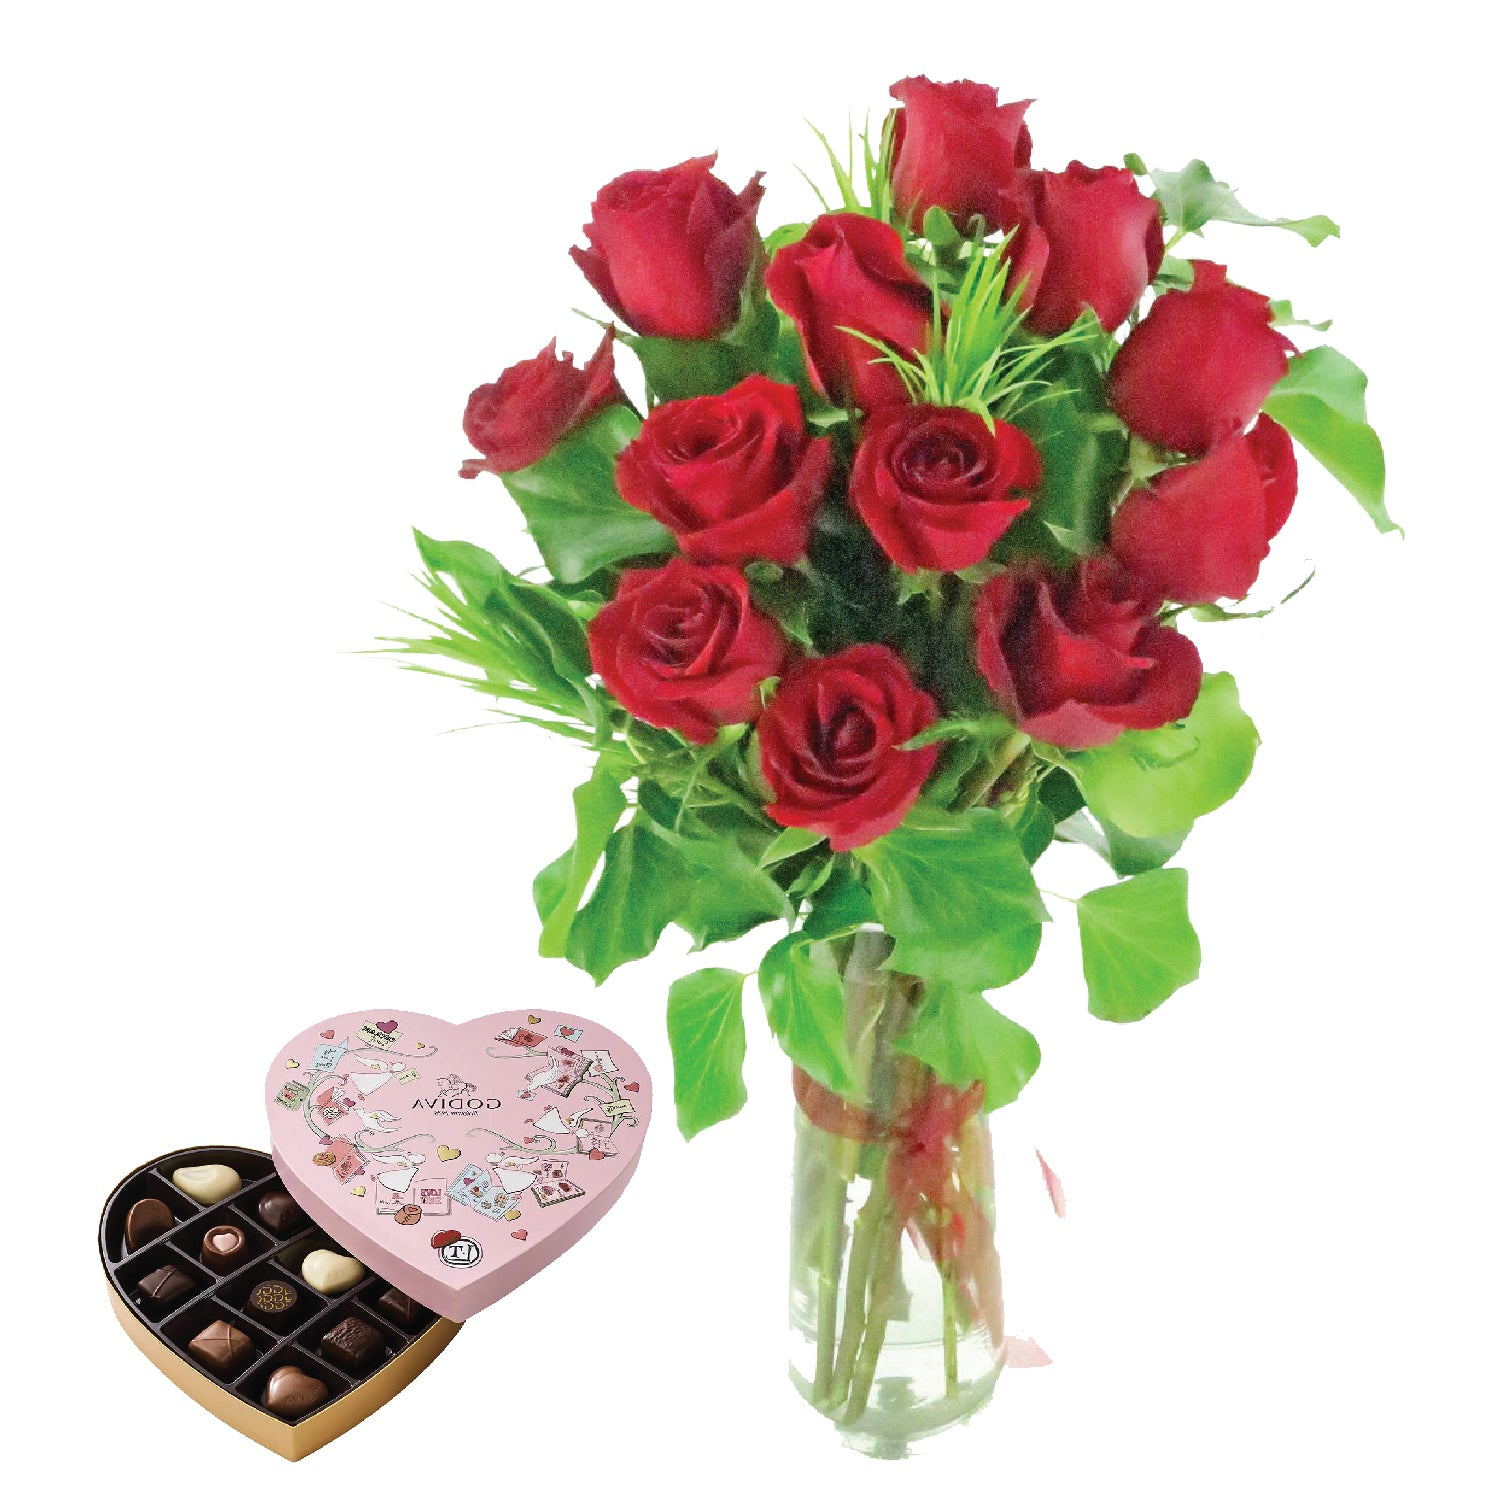 12 Rose Vase with  GODIVA Heart Chocolate Gift Box - Arabian Petals